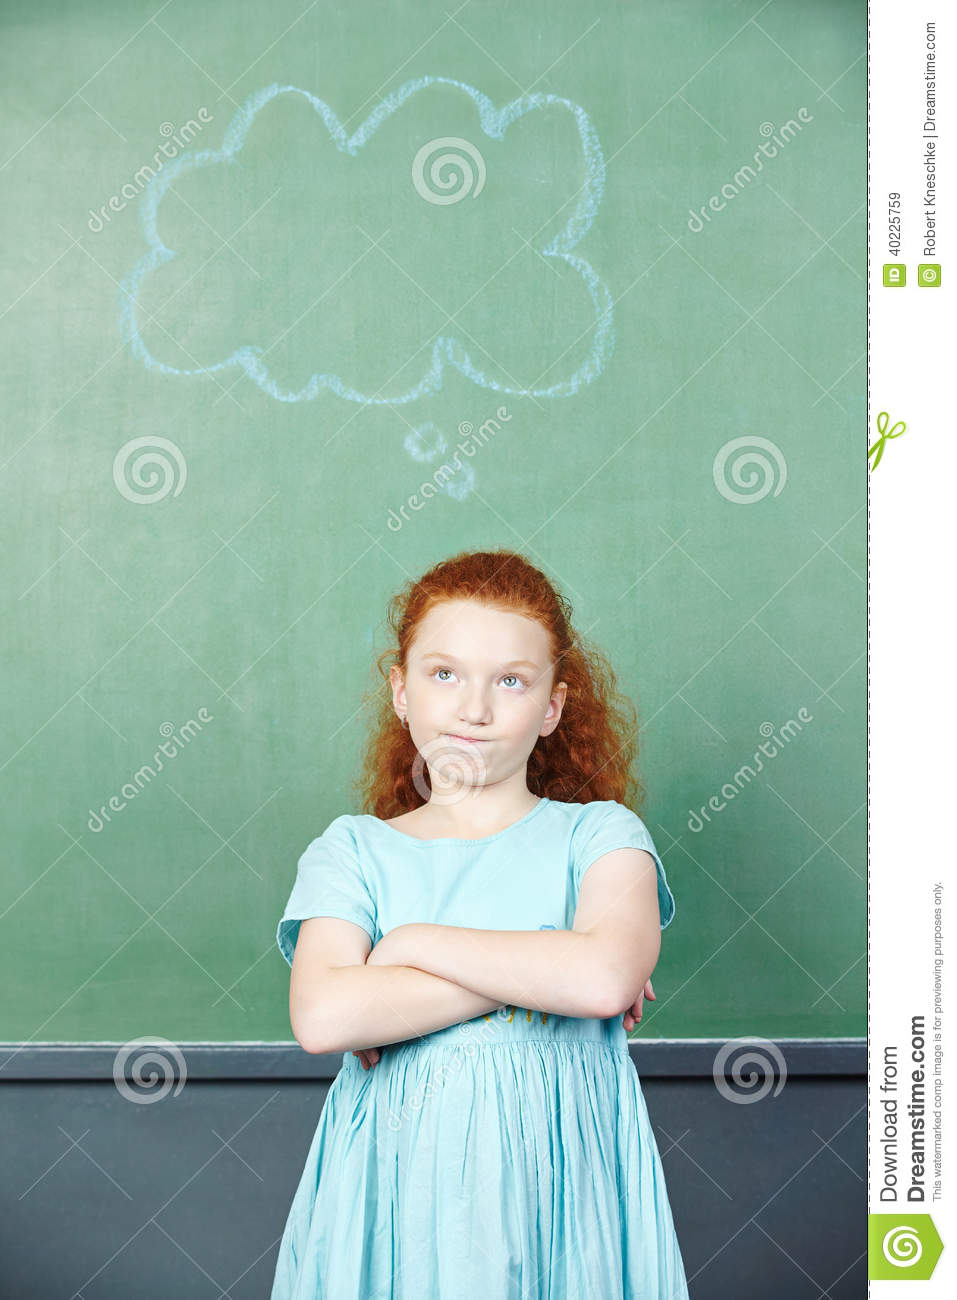 Pensive girl with thought bubble